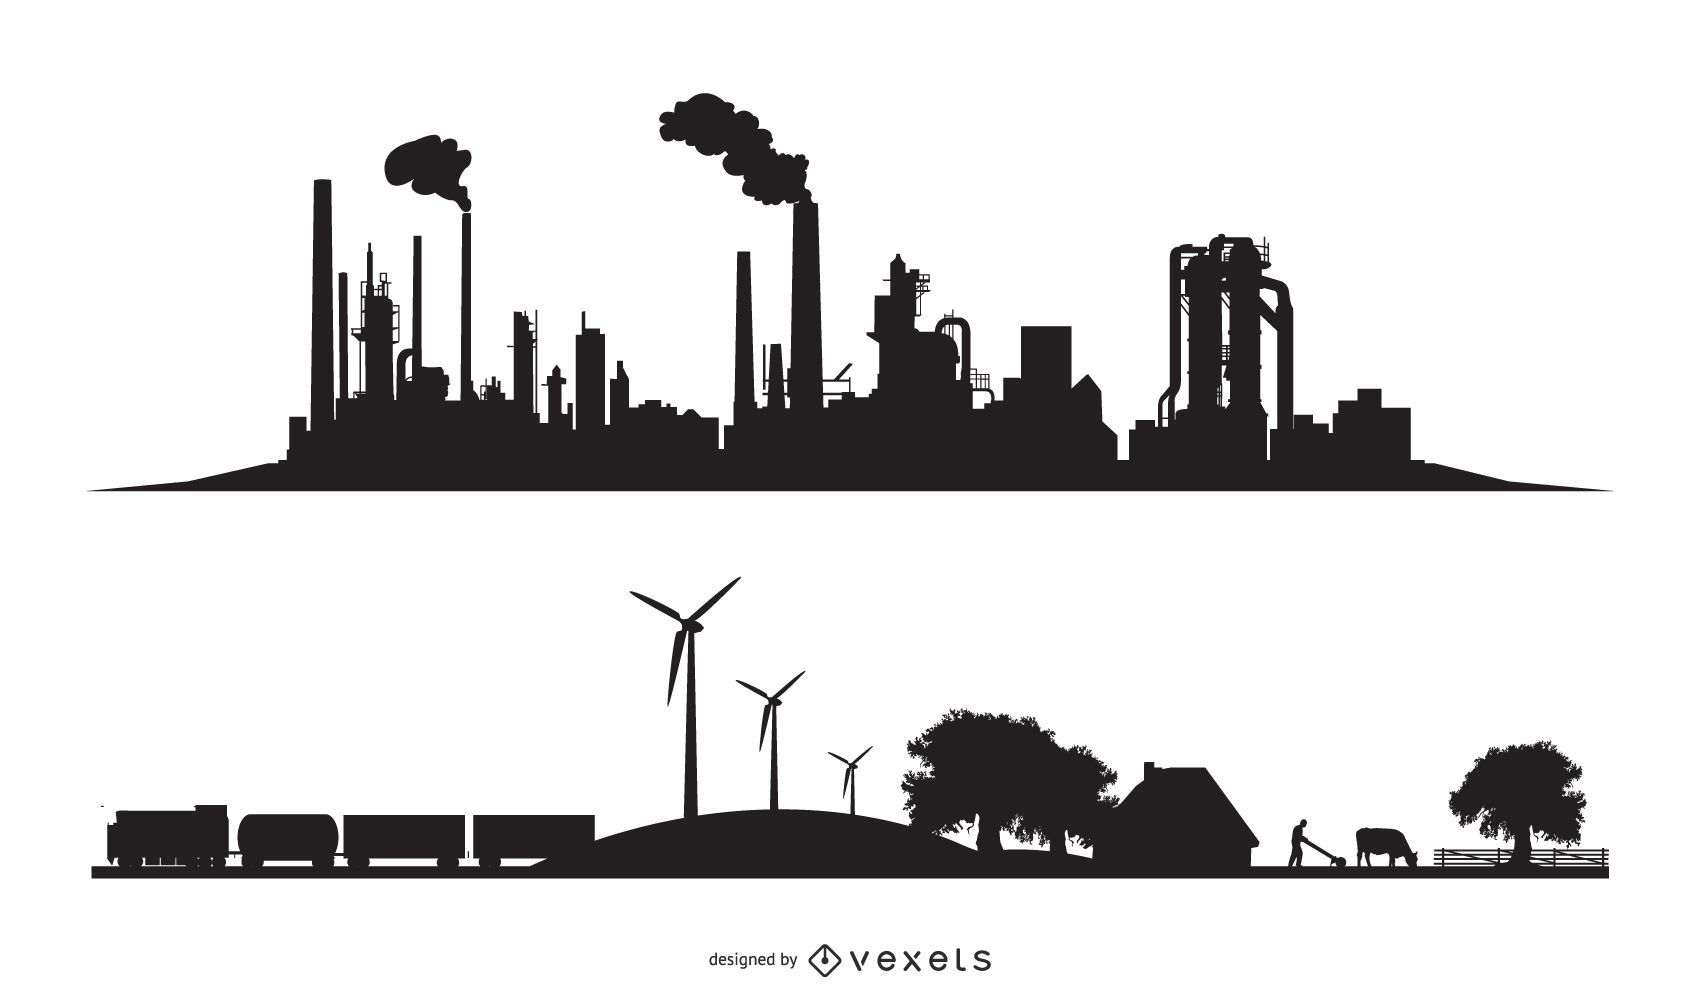 City industrial and eco silhouettes